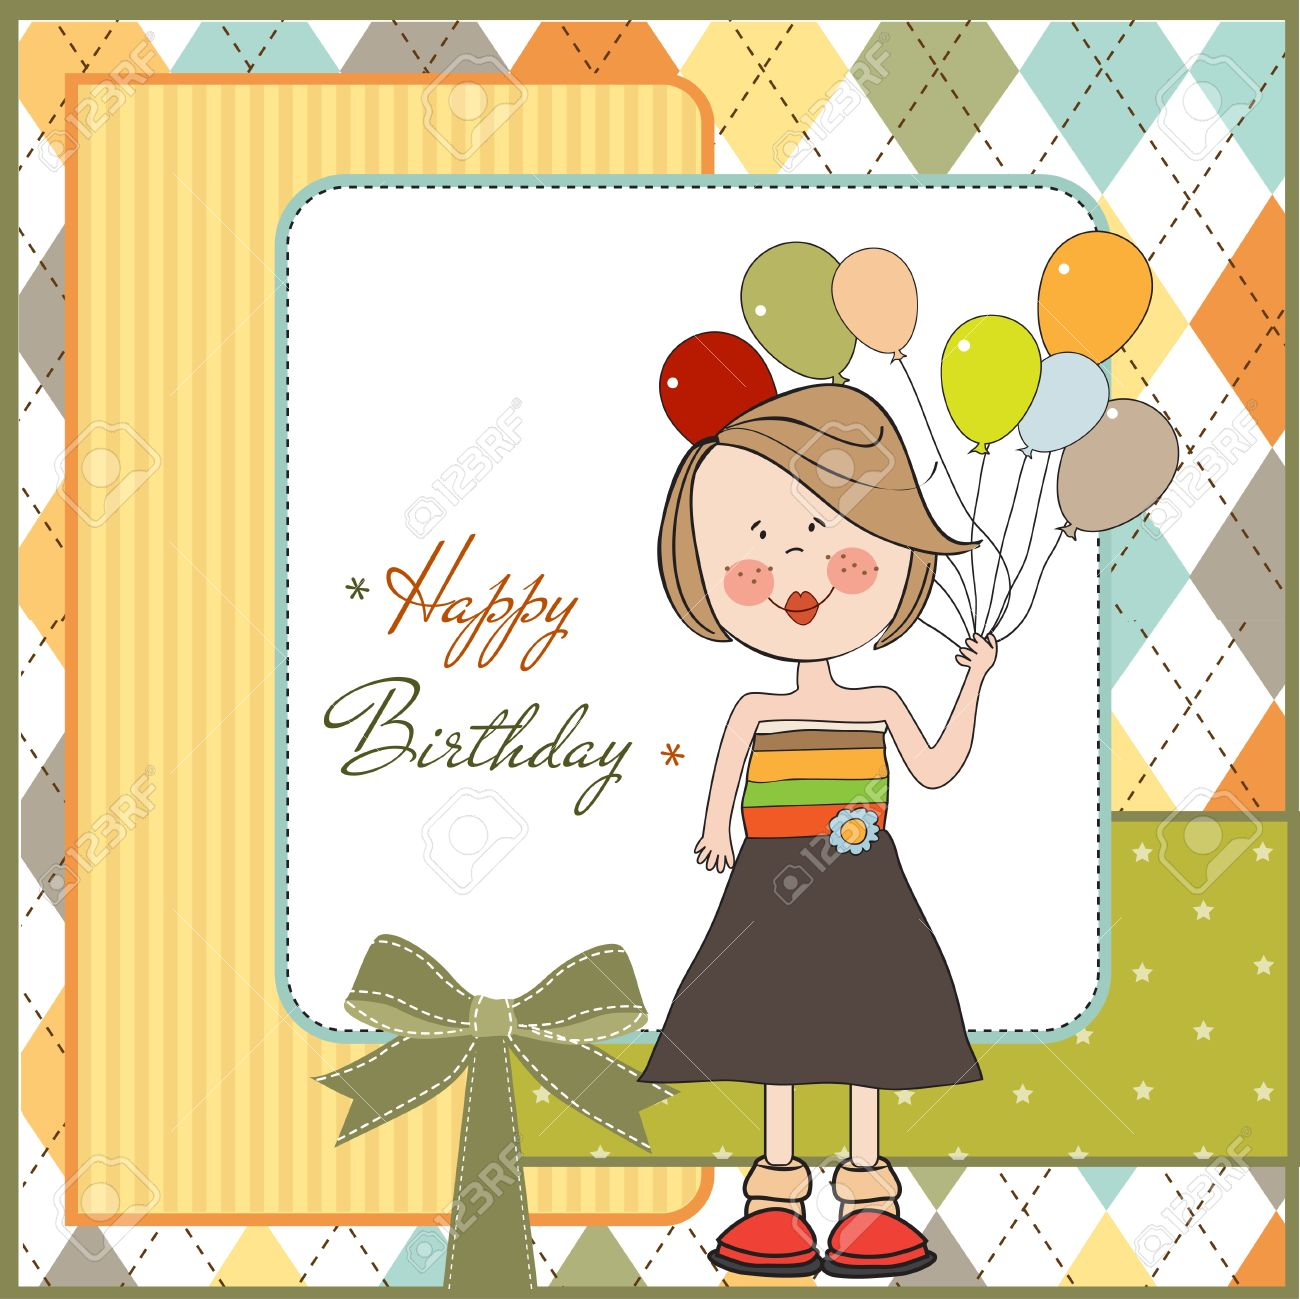 Funny happy birthday cards for girls – Funny Happy Birthday Cards